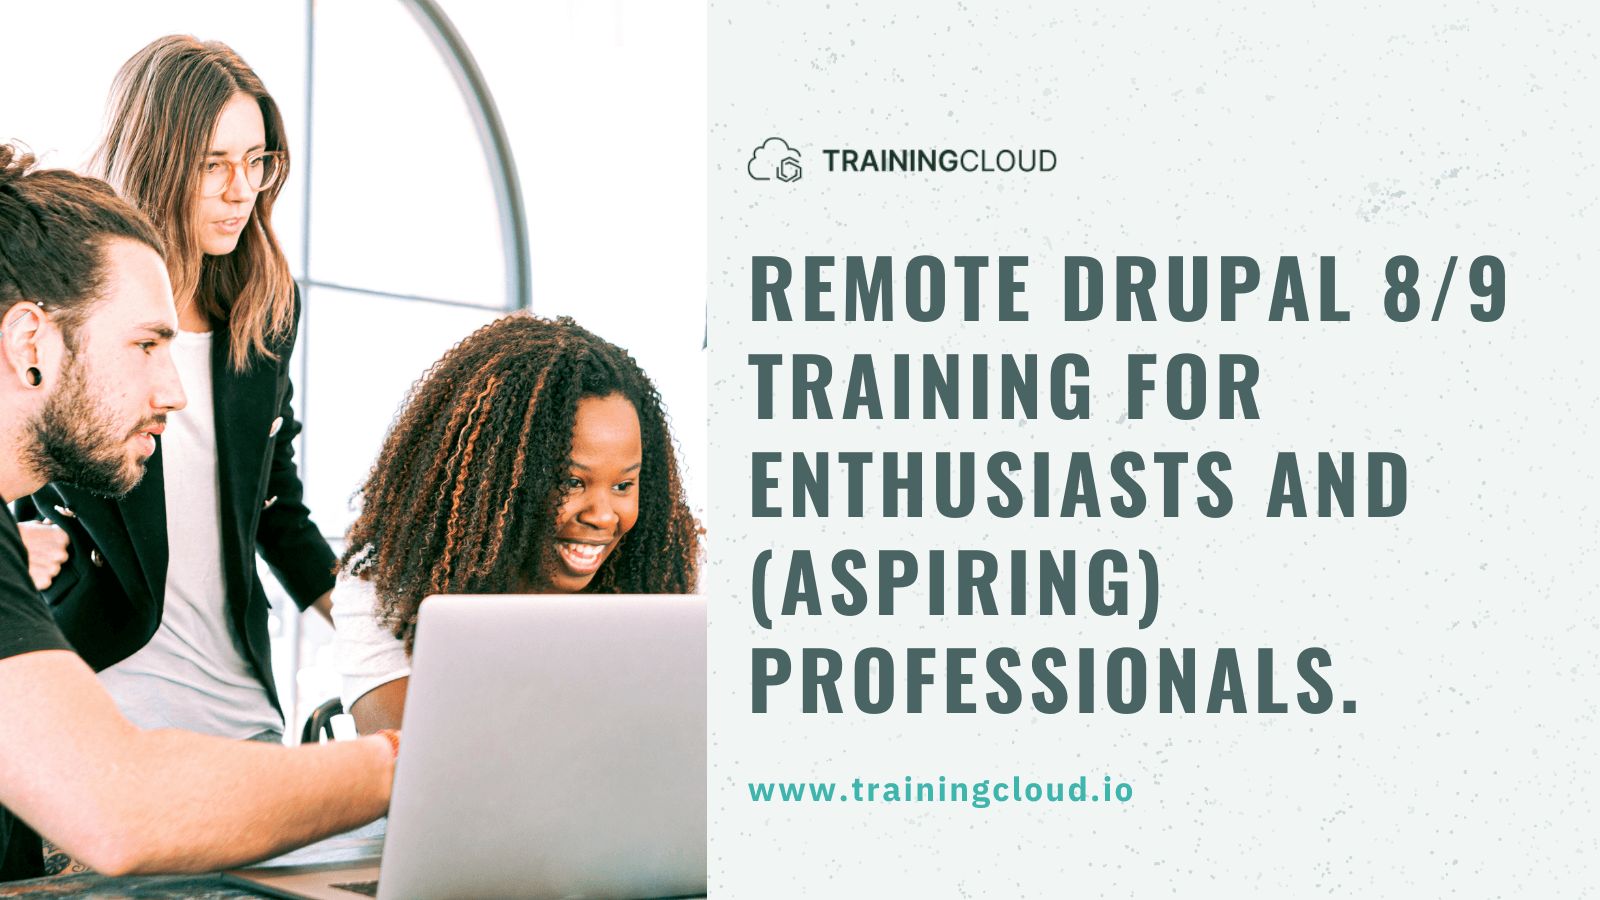 TrainingCloud: Drupal and PHP training for (aspiring) developers